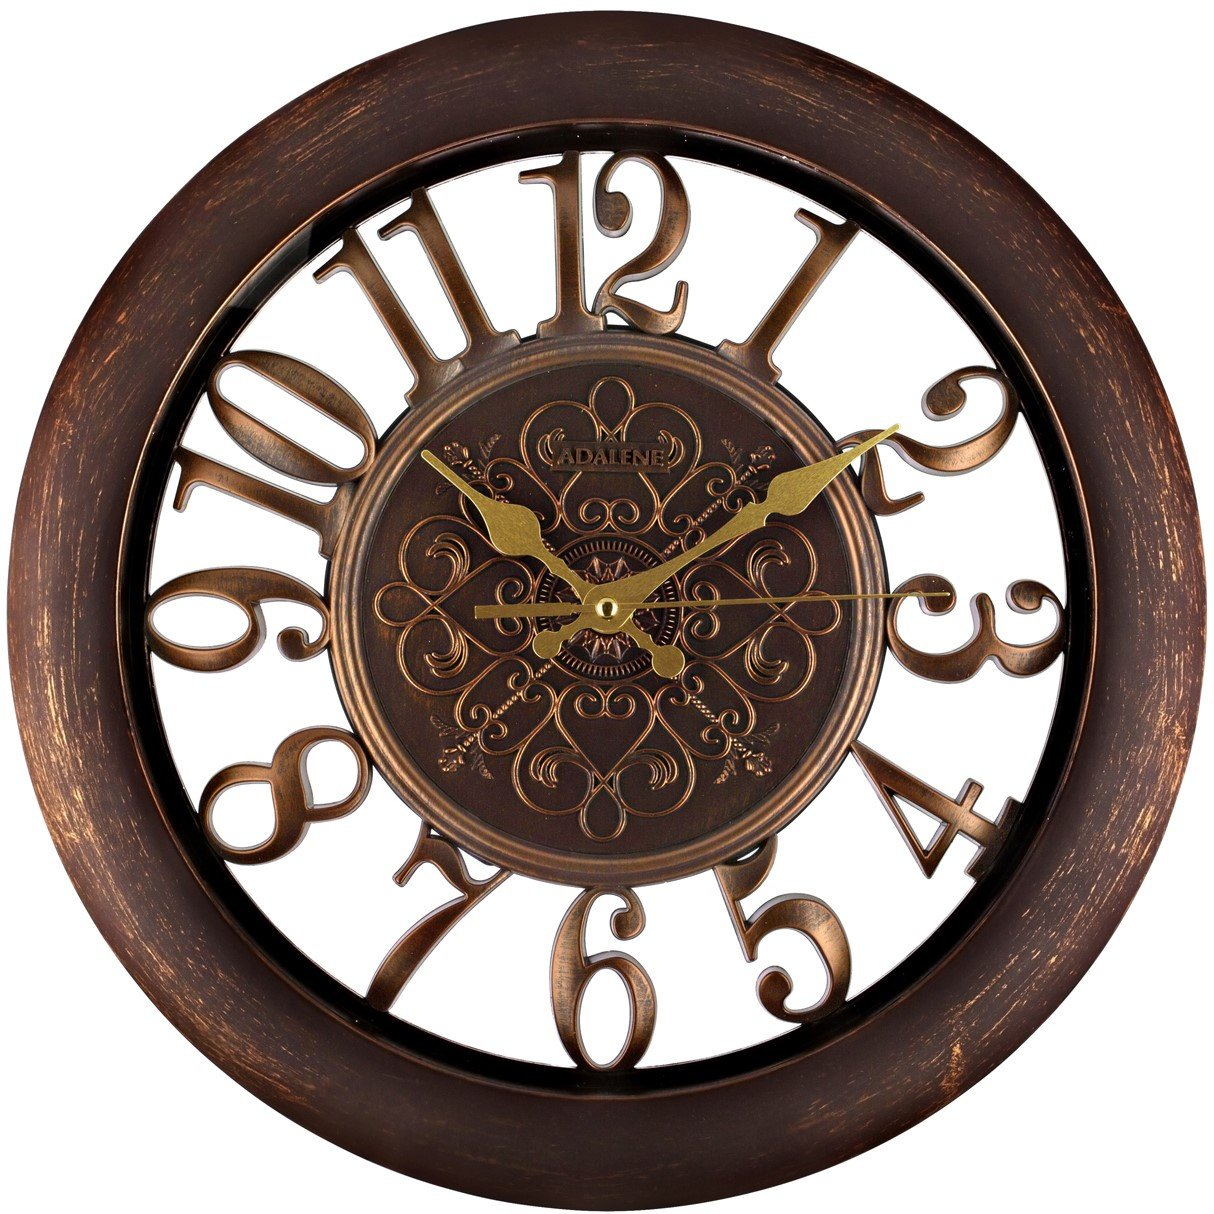 Adalene Wall Clocks Large Modern - Battery Operated Non Ticking 13 Inch Elegant Wall Clock Silent, Quiet Analog Quartz Home Decor Vintage Decorative Wall Clock for Living Room, Kitchen, Rustic Brown WSH0294